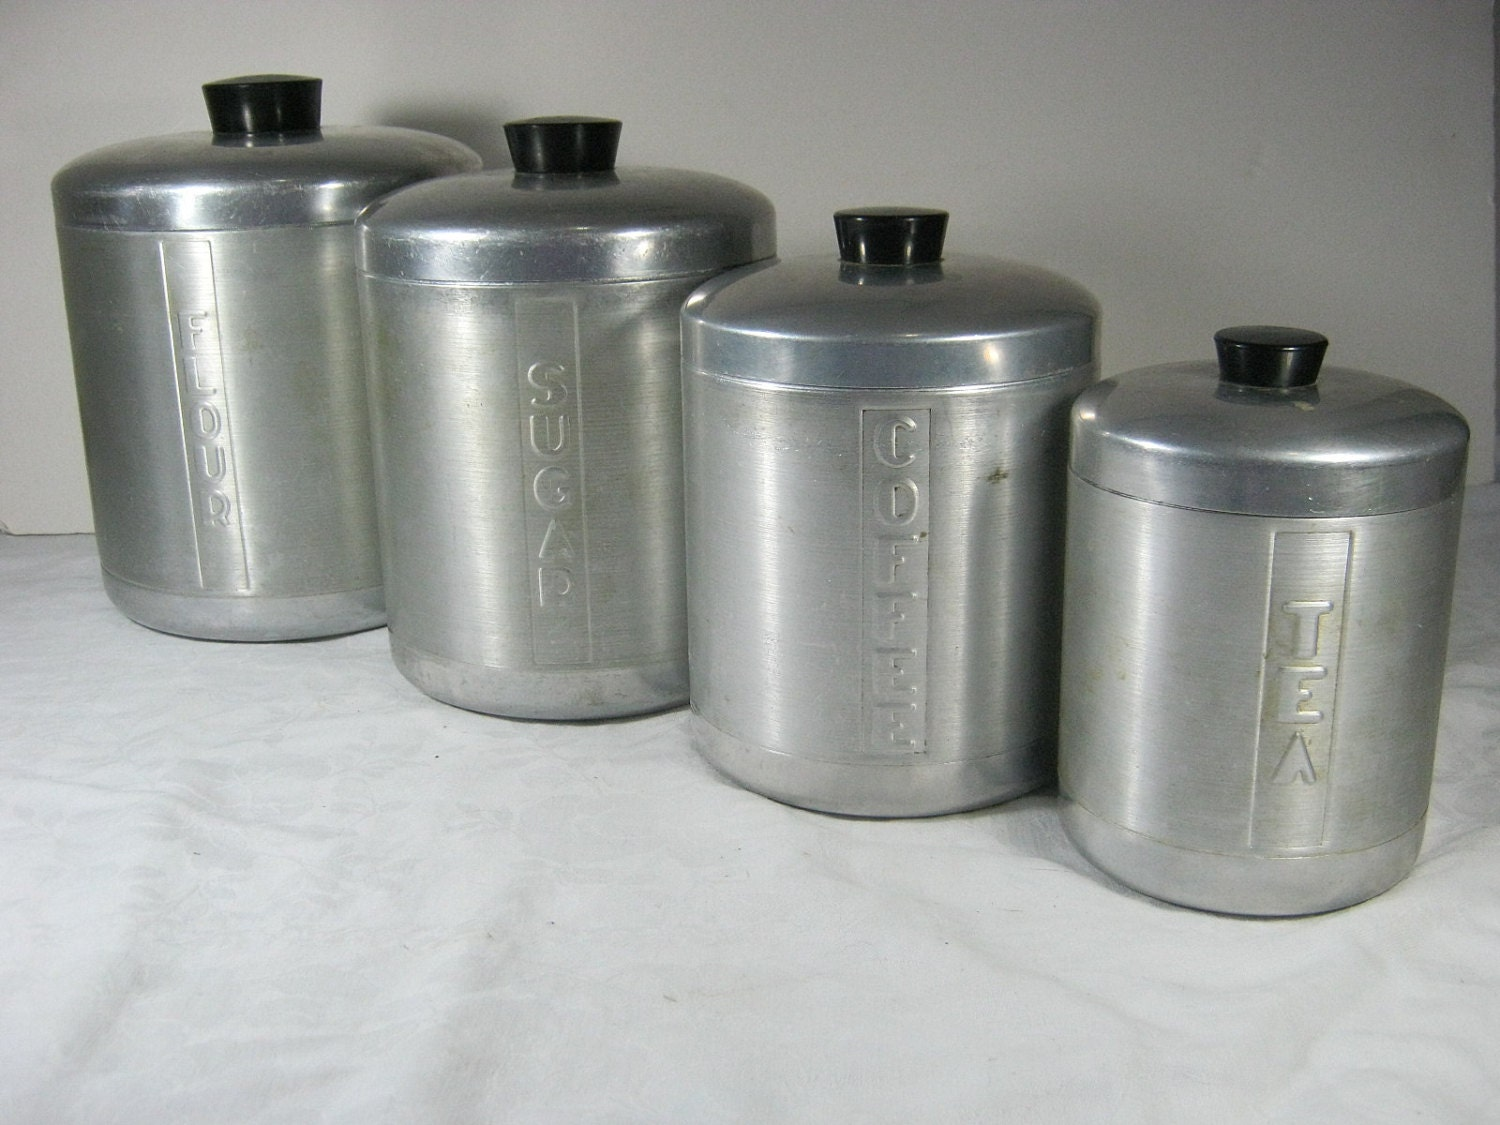 Vintage aluminum canisters retro 50s canister set 4 for Kitchen kitchen set